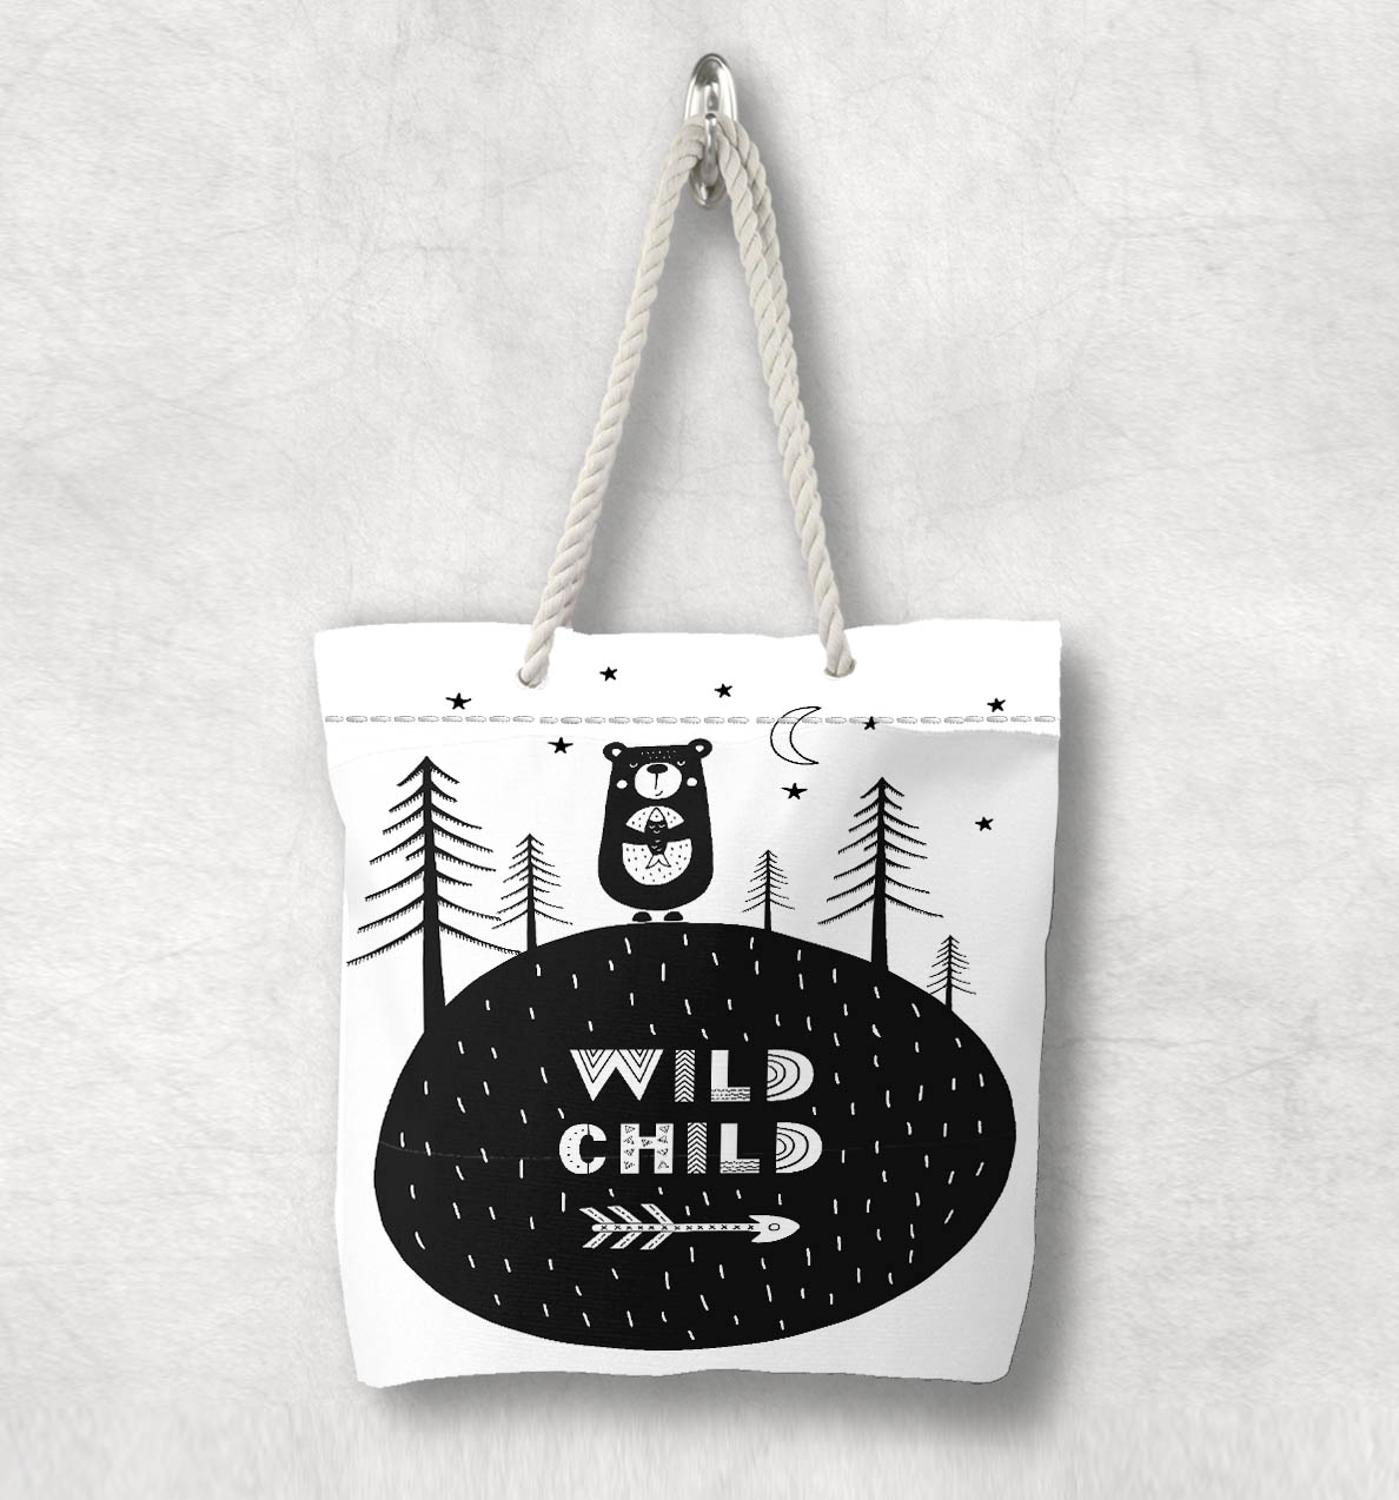 Else Wild Child Beas Jungle Tree Animals Scandinavian White Rope Handle Canvas Bag  Cartoon Print Zippered Tote Bag Shoulder Bag